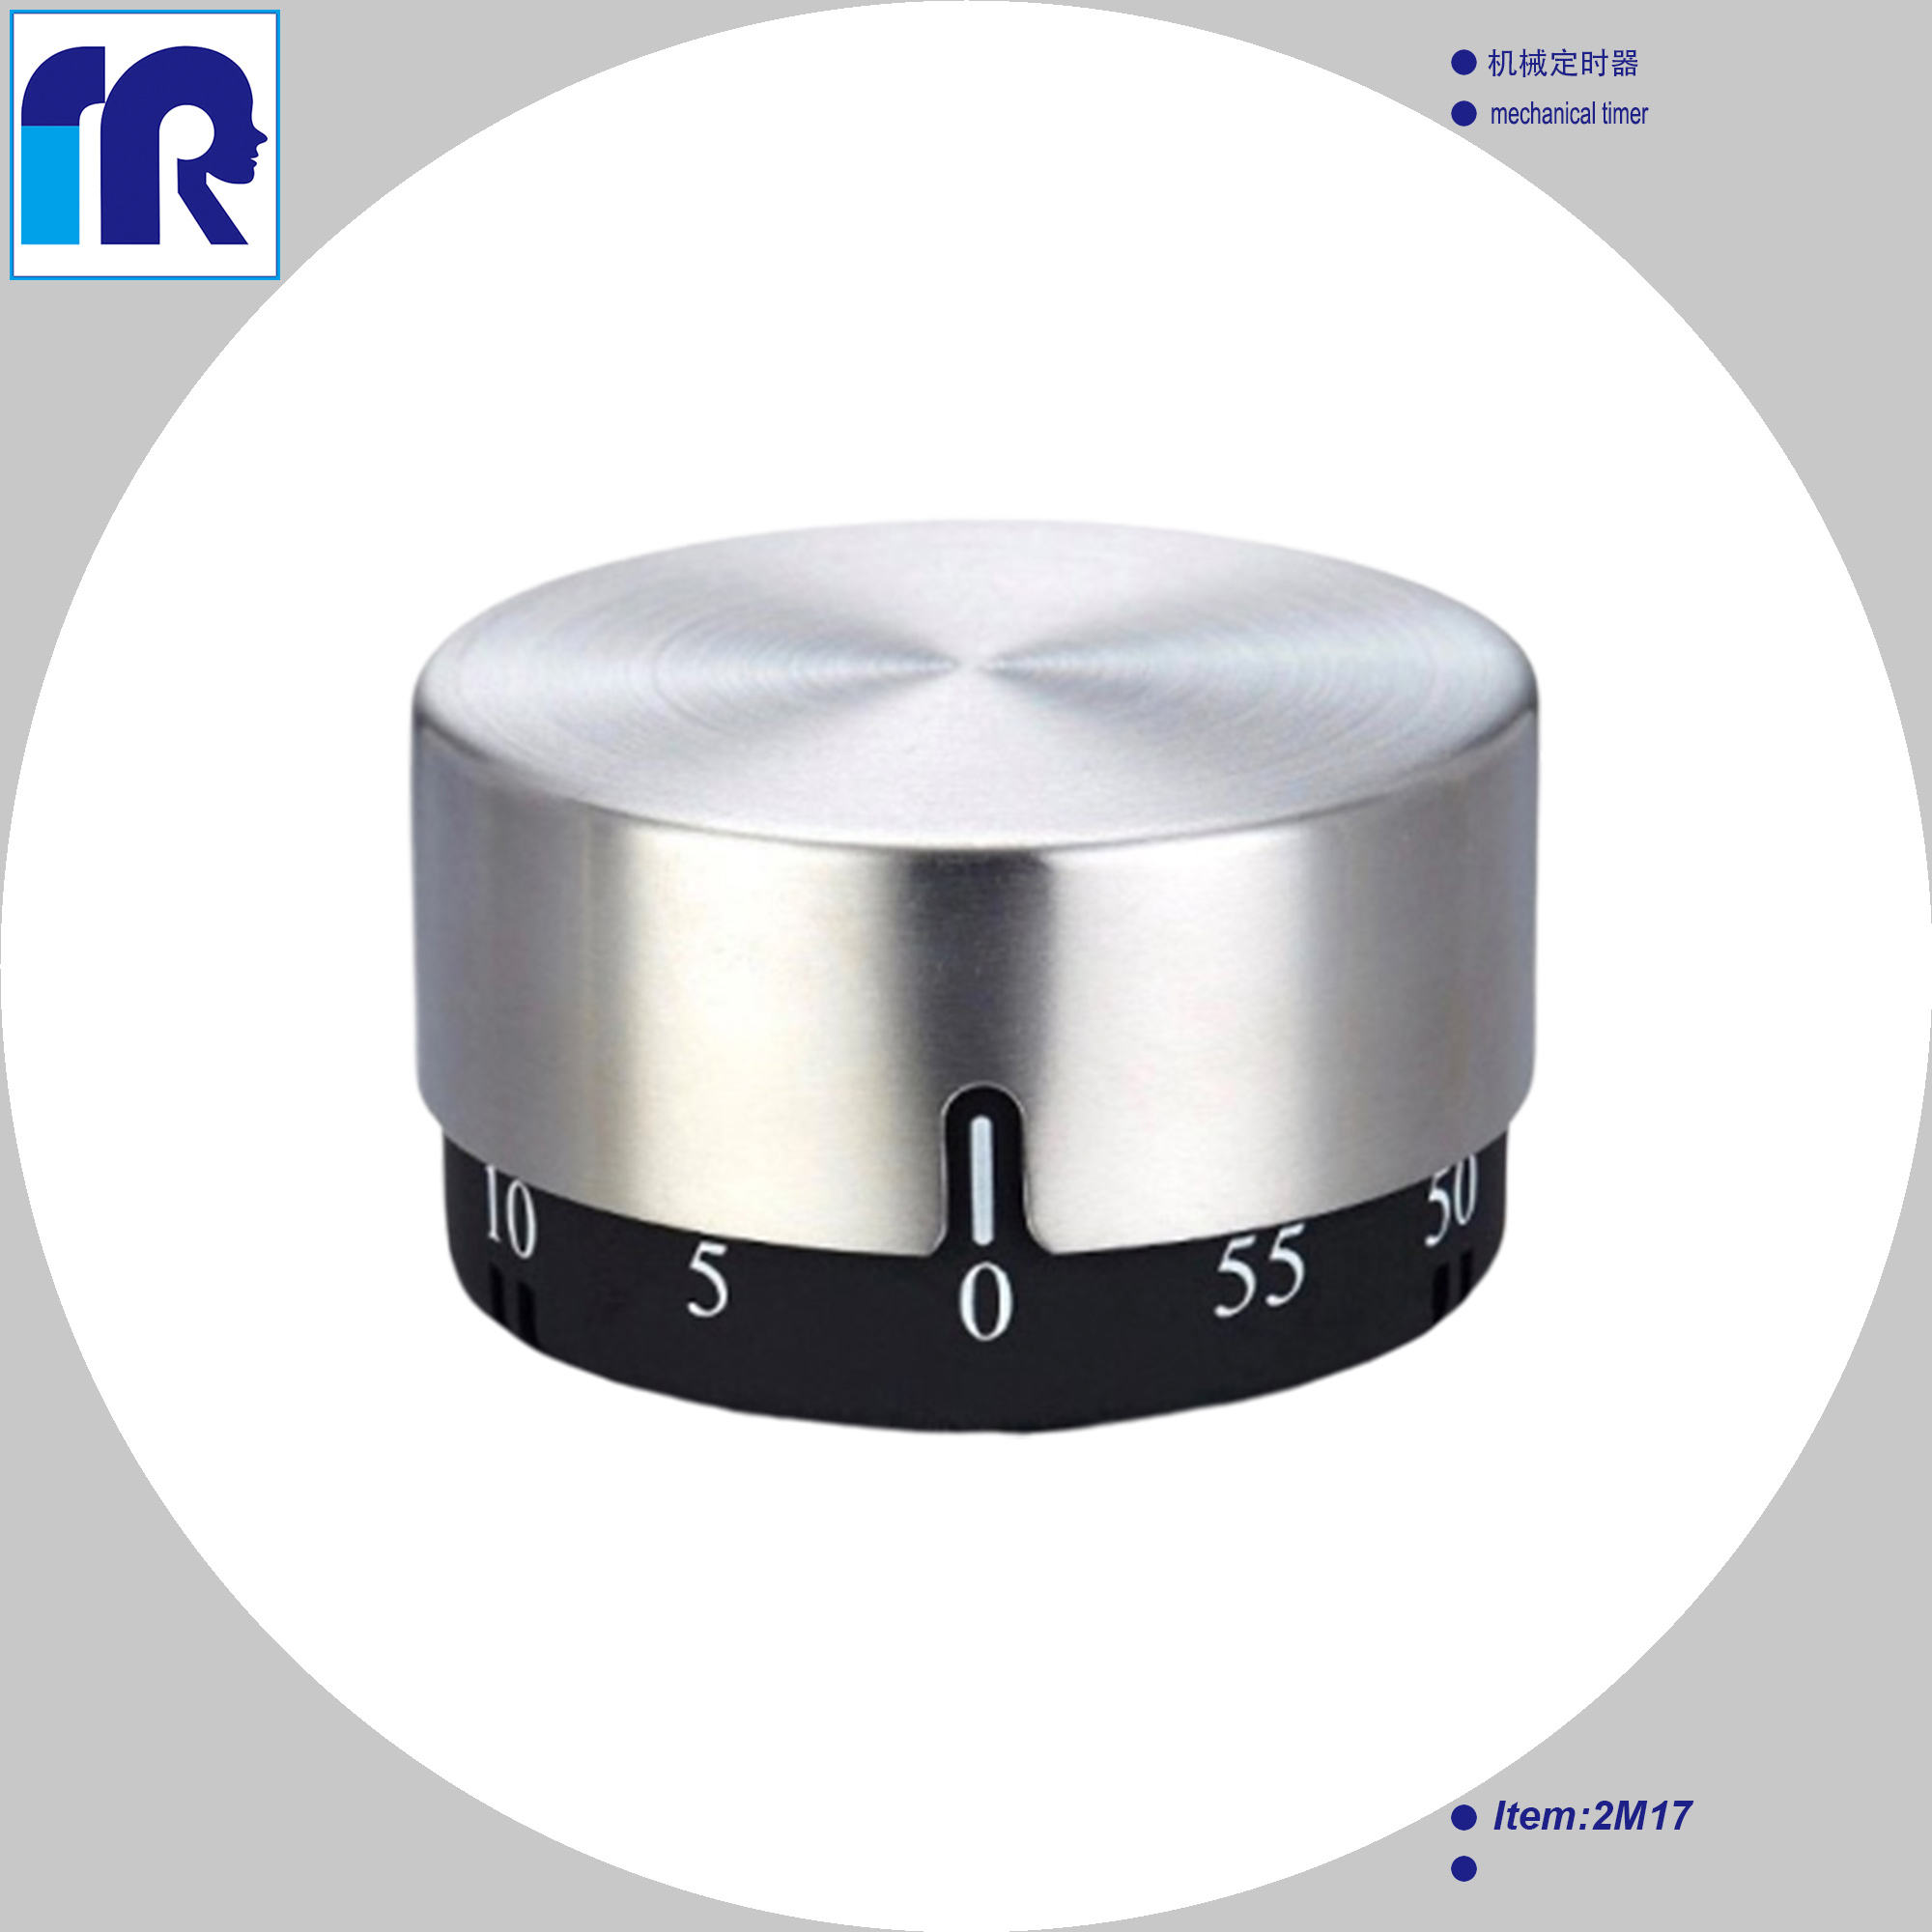 mechanical timer,defrost stainless steel countdown kitchen timer, magnetic cooking timer